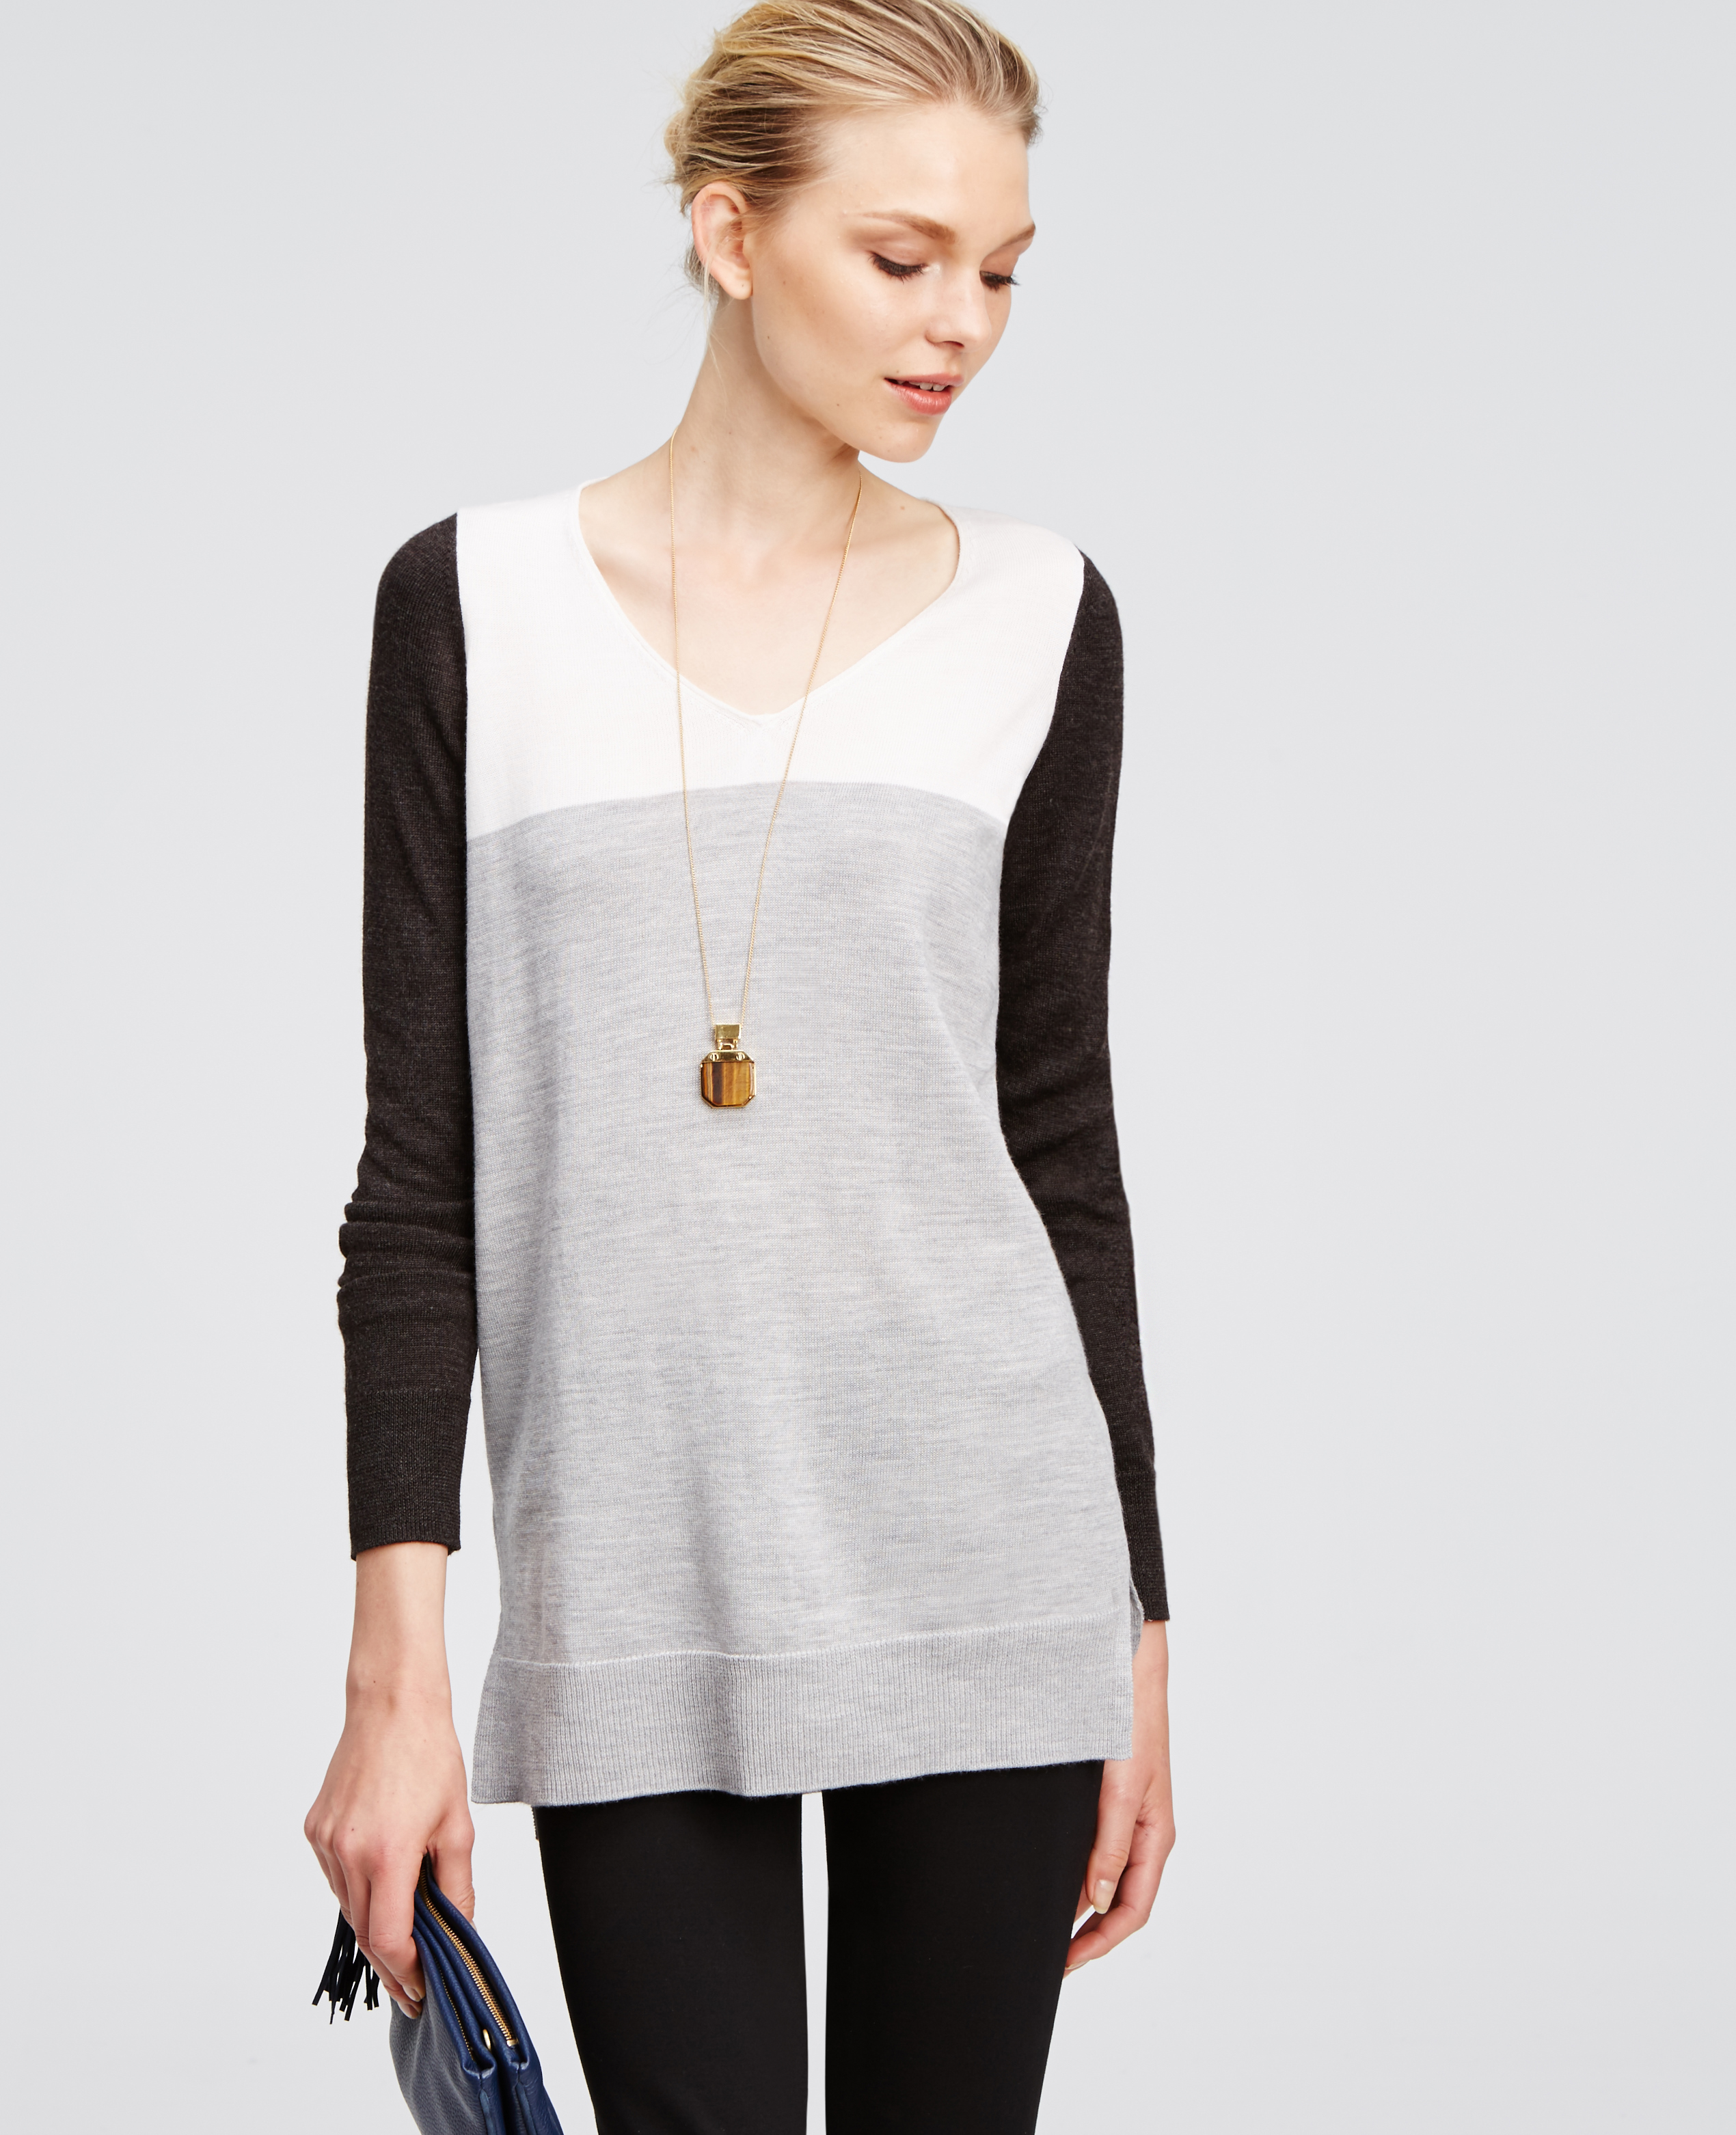 Ann taylor Petite Colorblock V-neck Tunic Sweater in Gray | Lyst